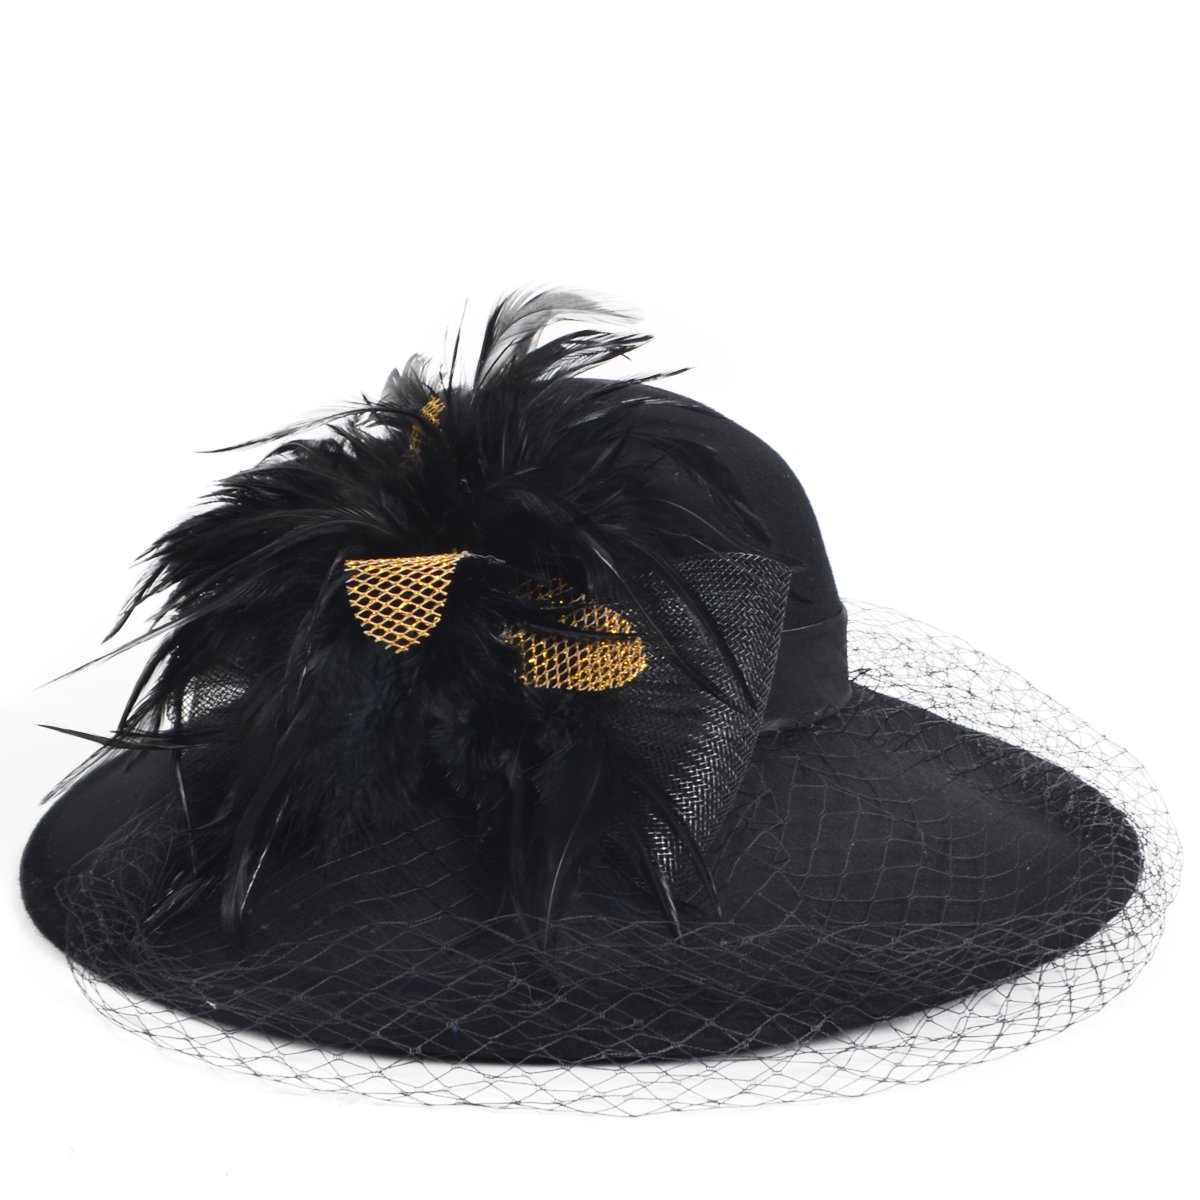 1950s Women's Hat Styles & History FORBUSITE Women Wool Felt Plume Church Dress Winter Hat $29.99 AT vintagedancer.com